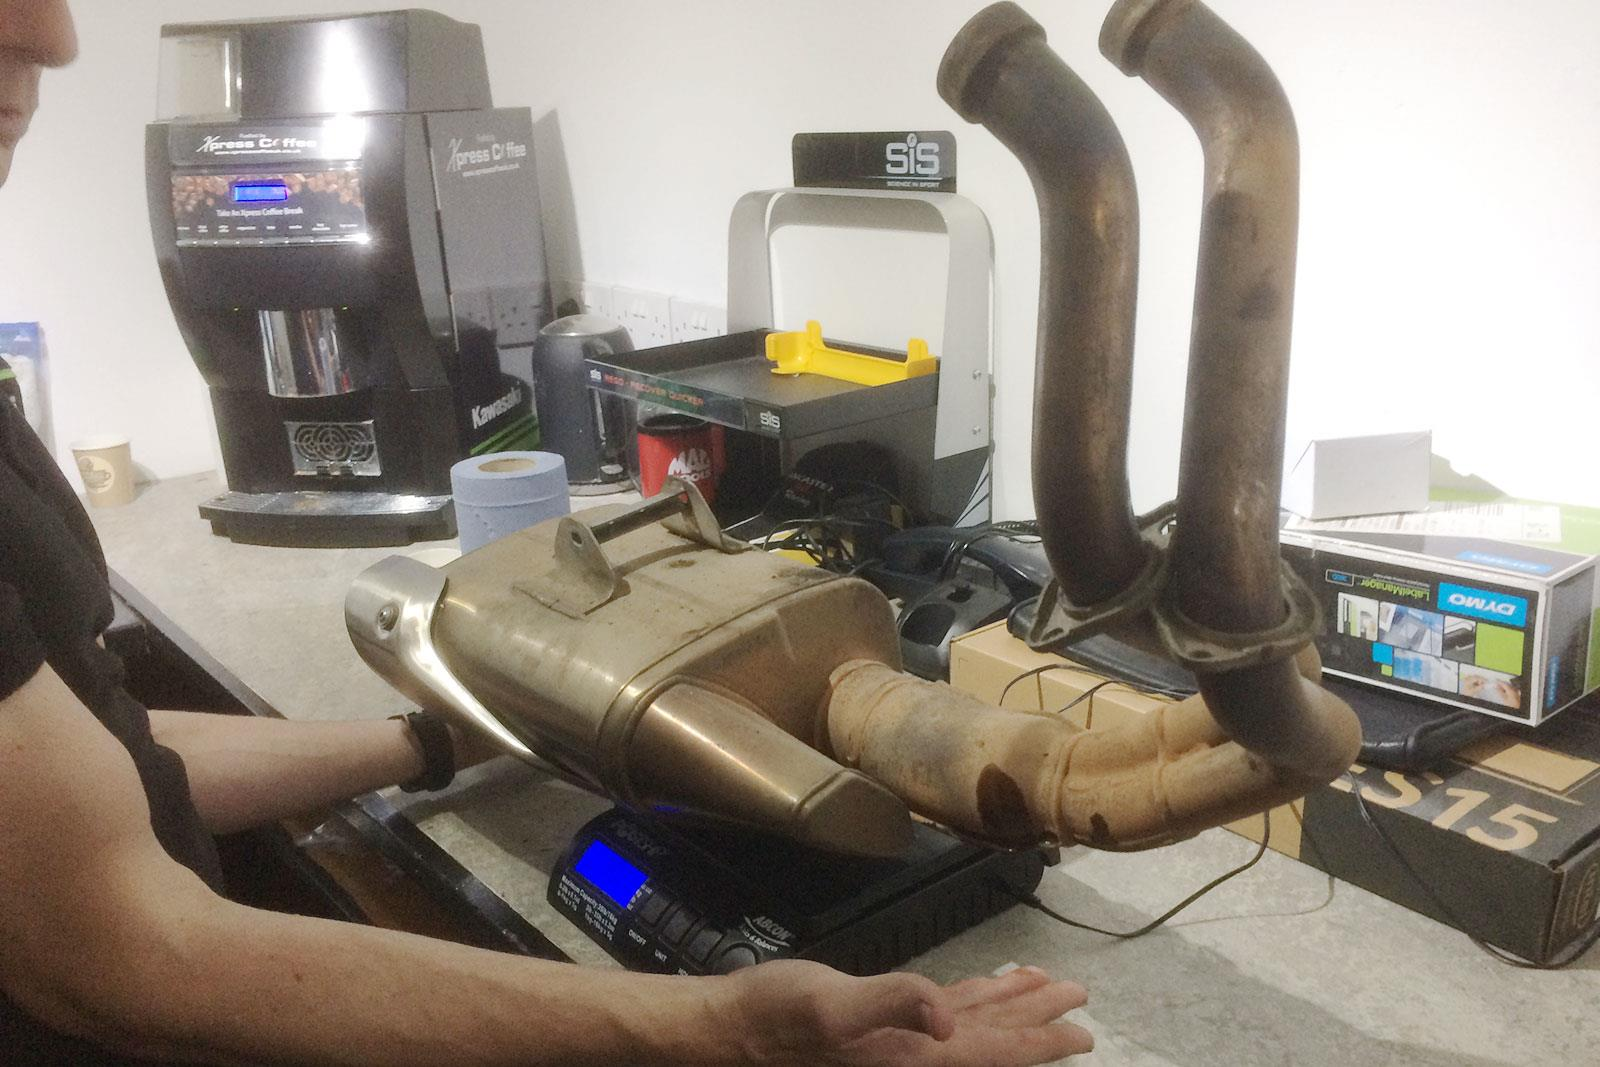 Ninja 650 exhaust system on the scales